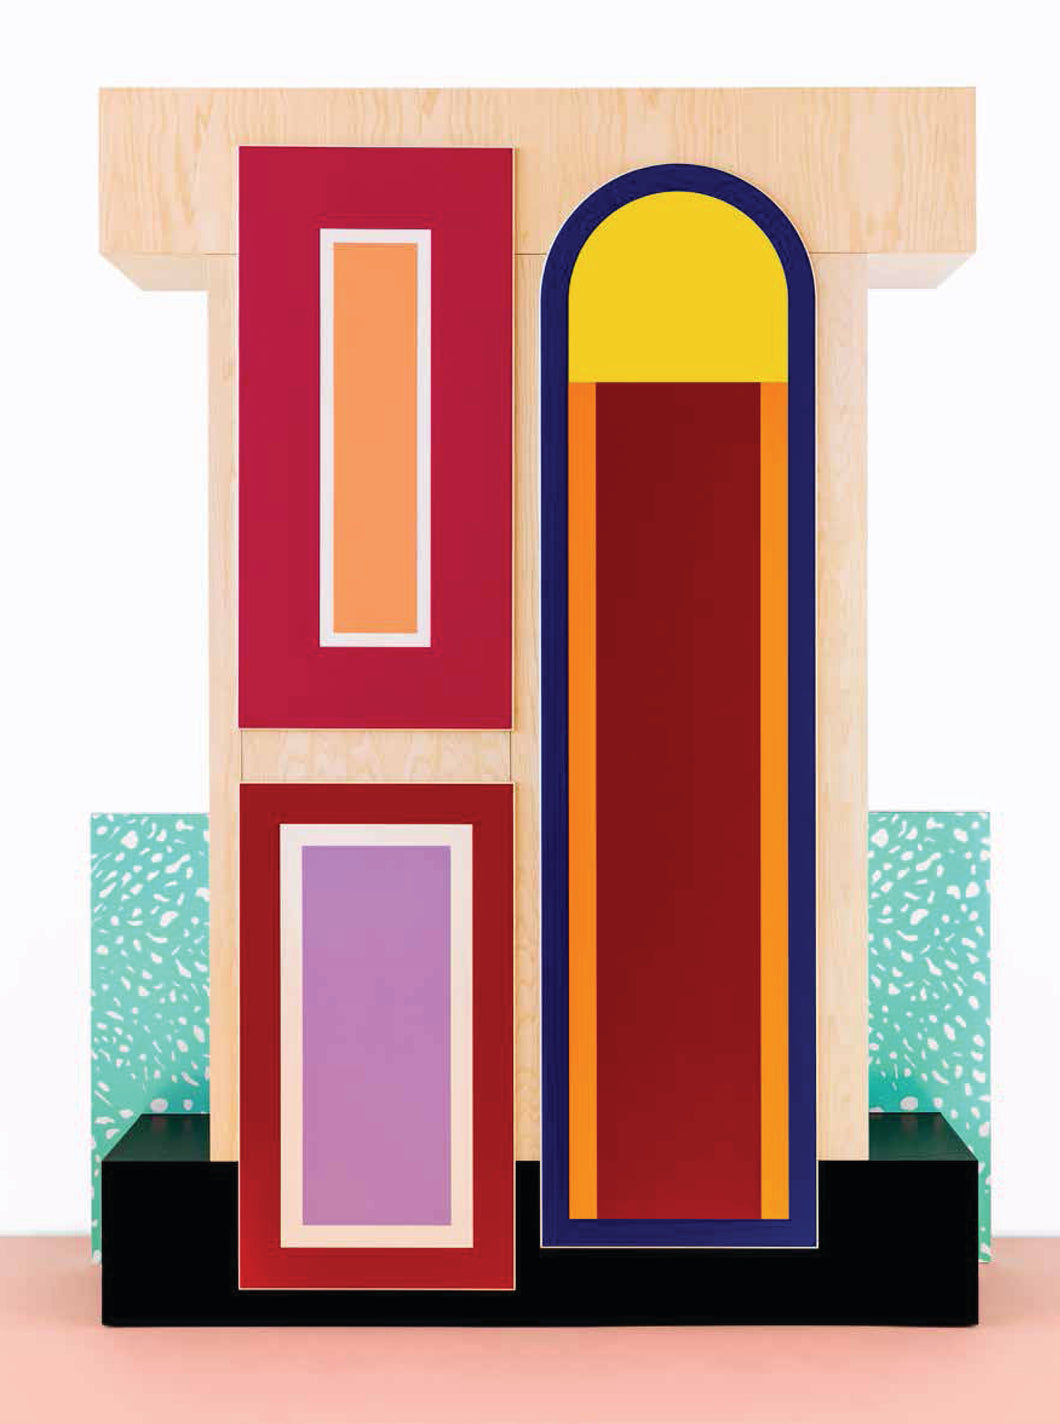 Gean Moreno - Ettore Sottsass and The Social Factory